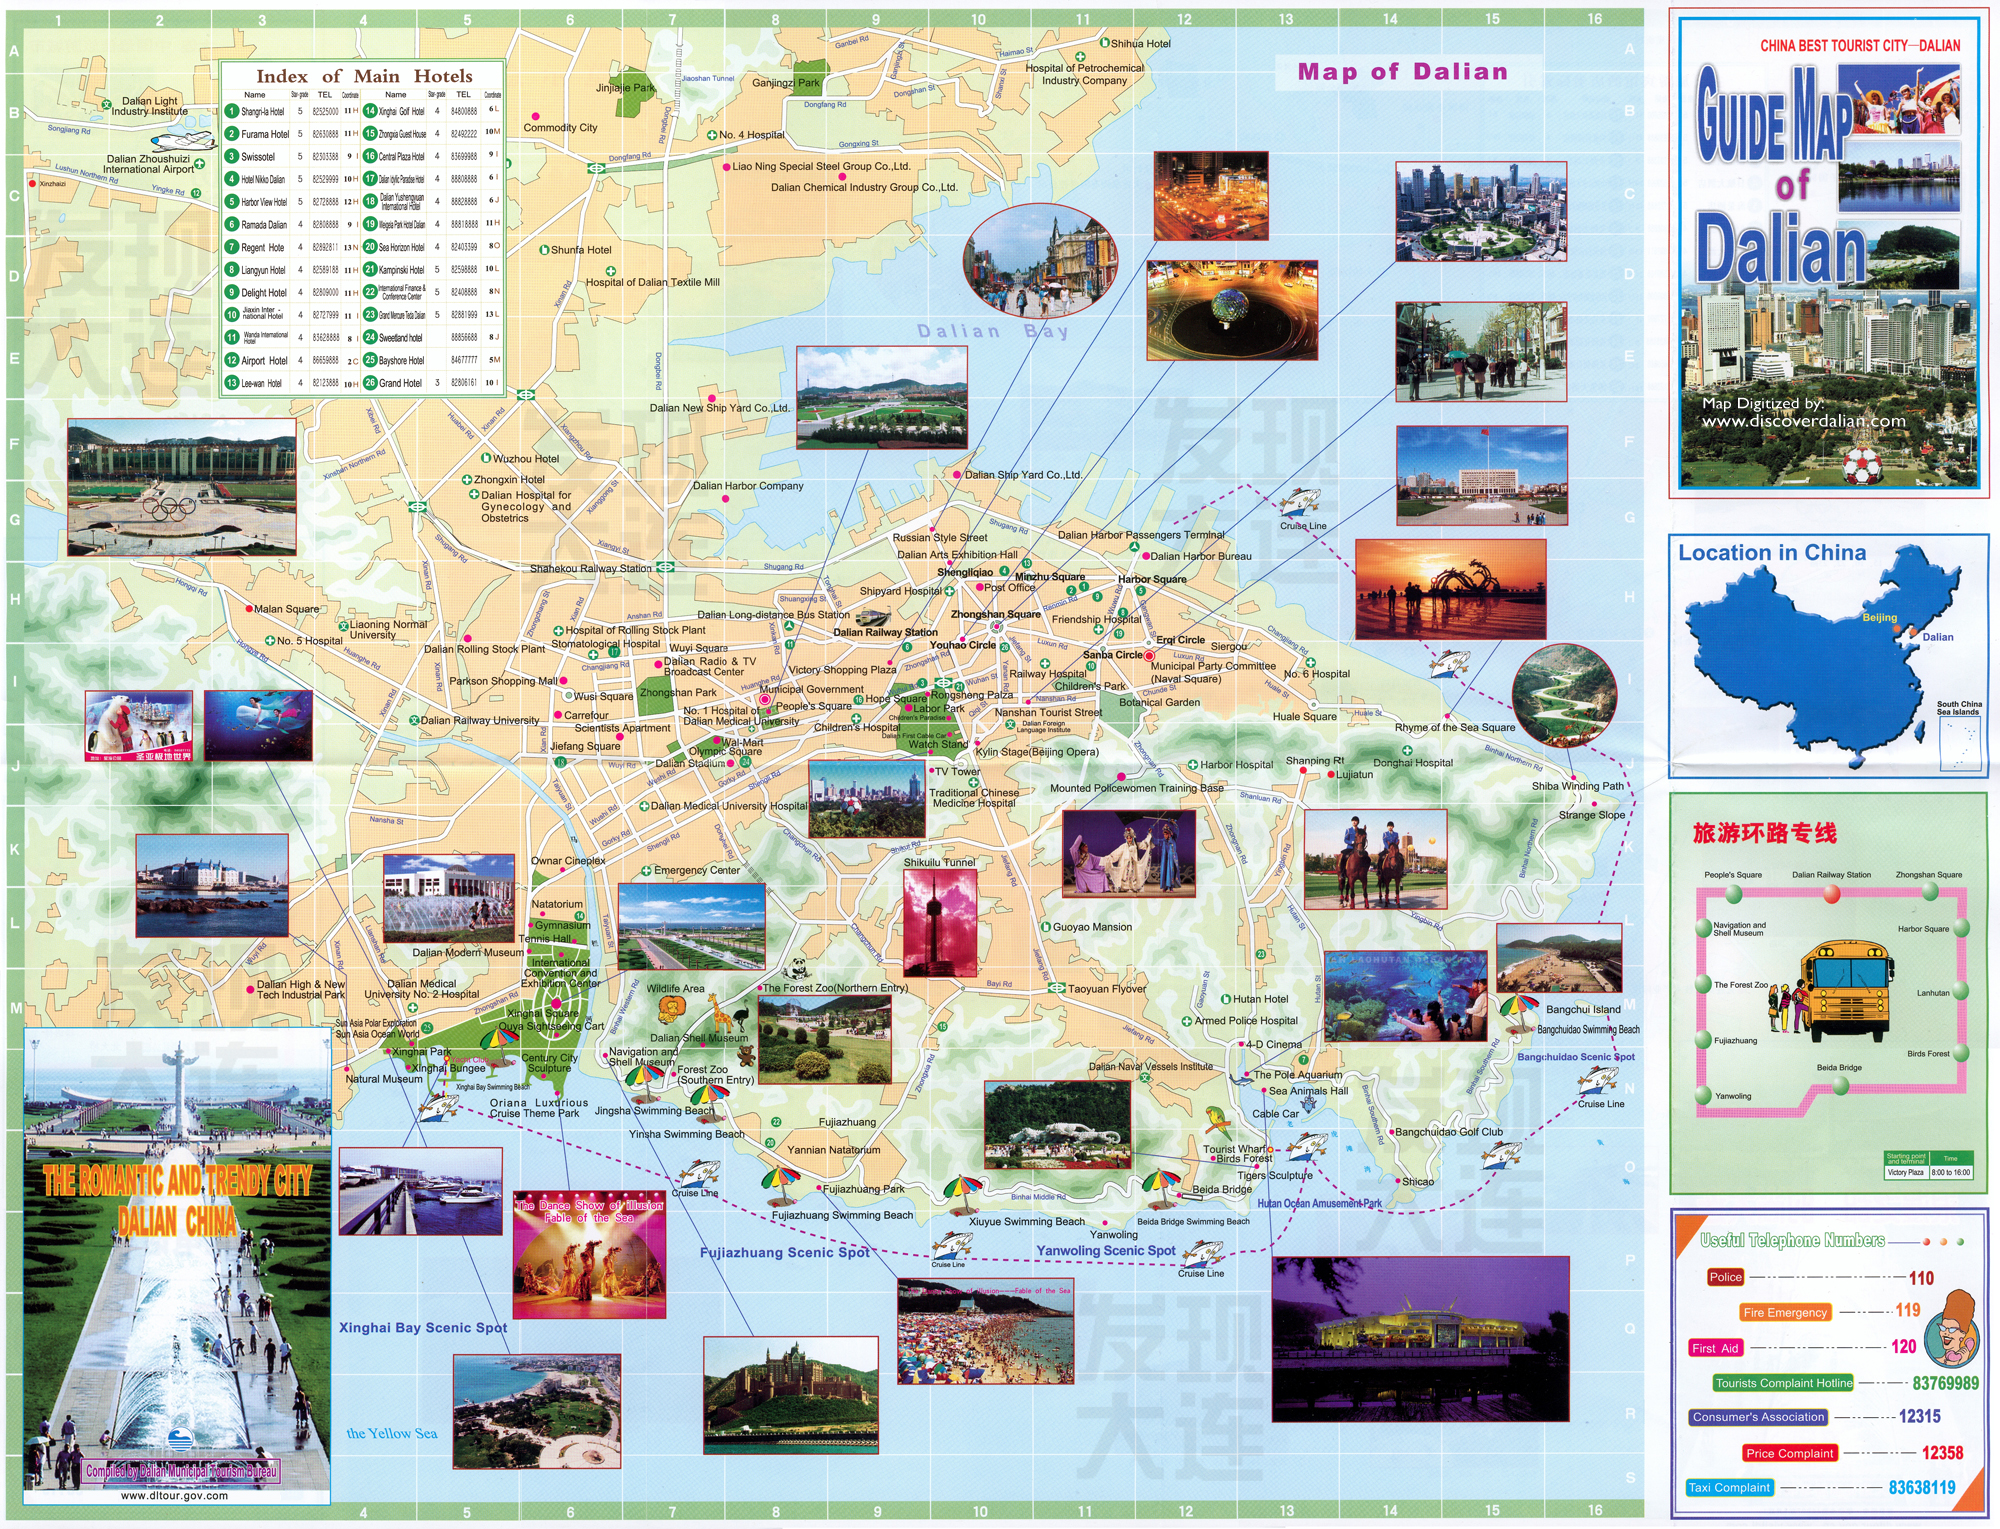 Dalian Tourist Map Dalian mappery